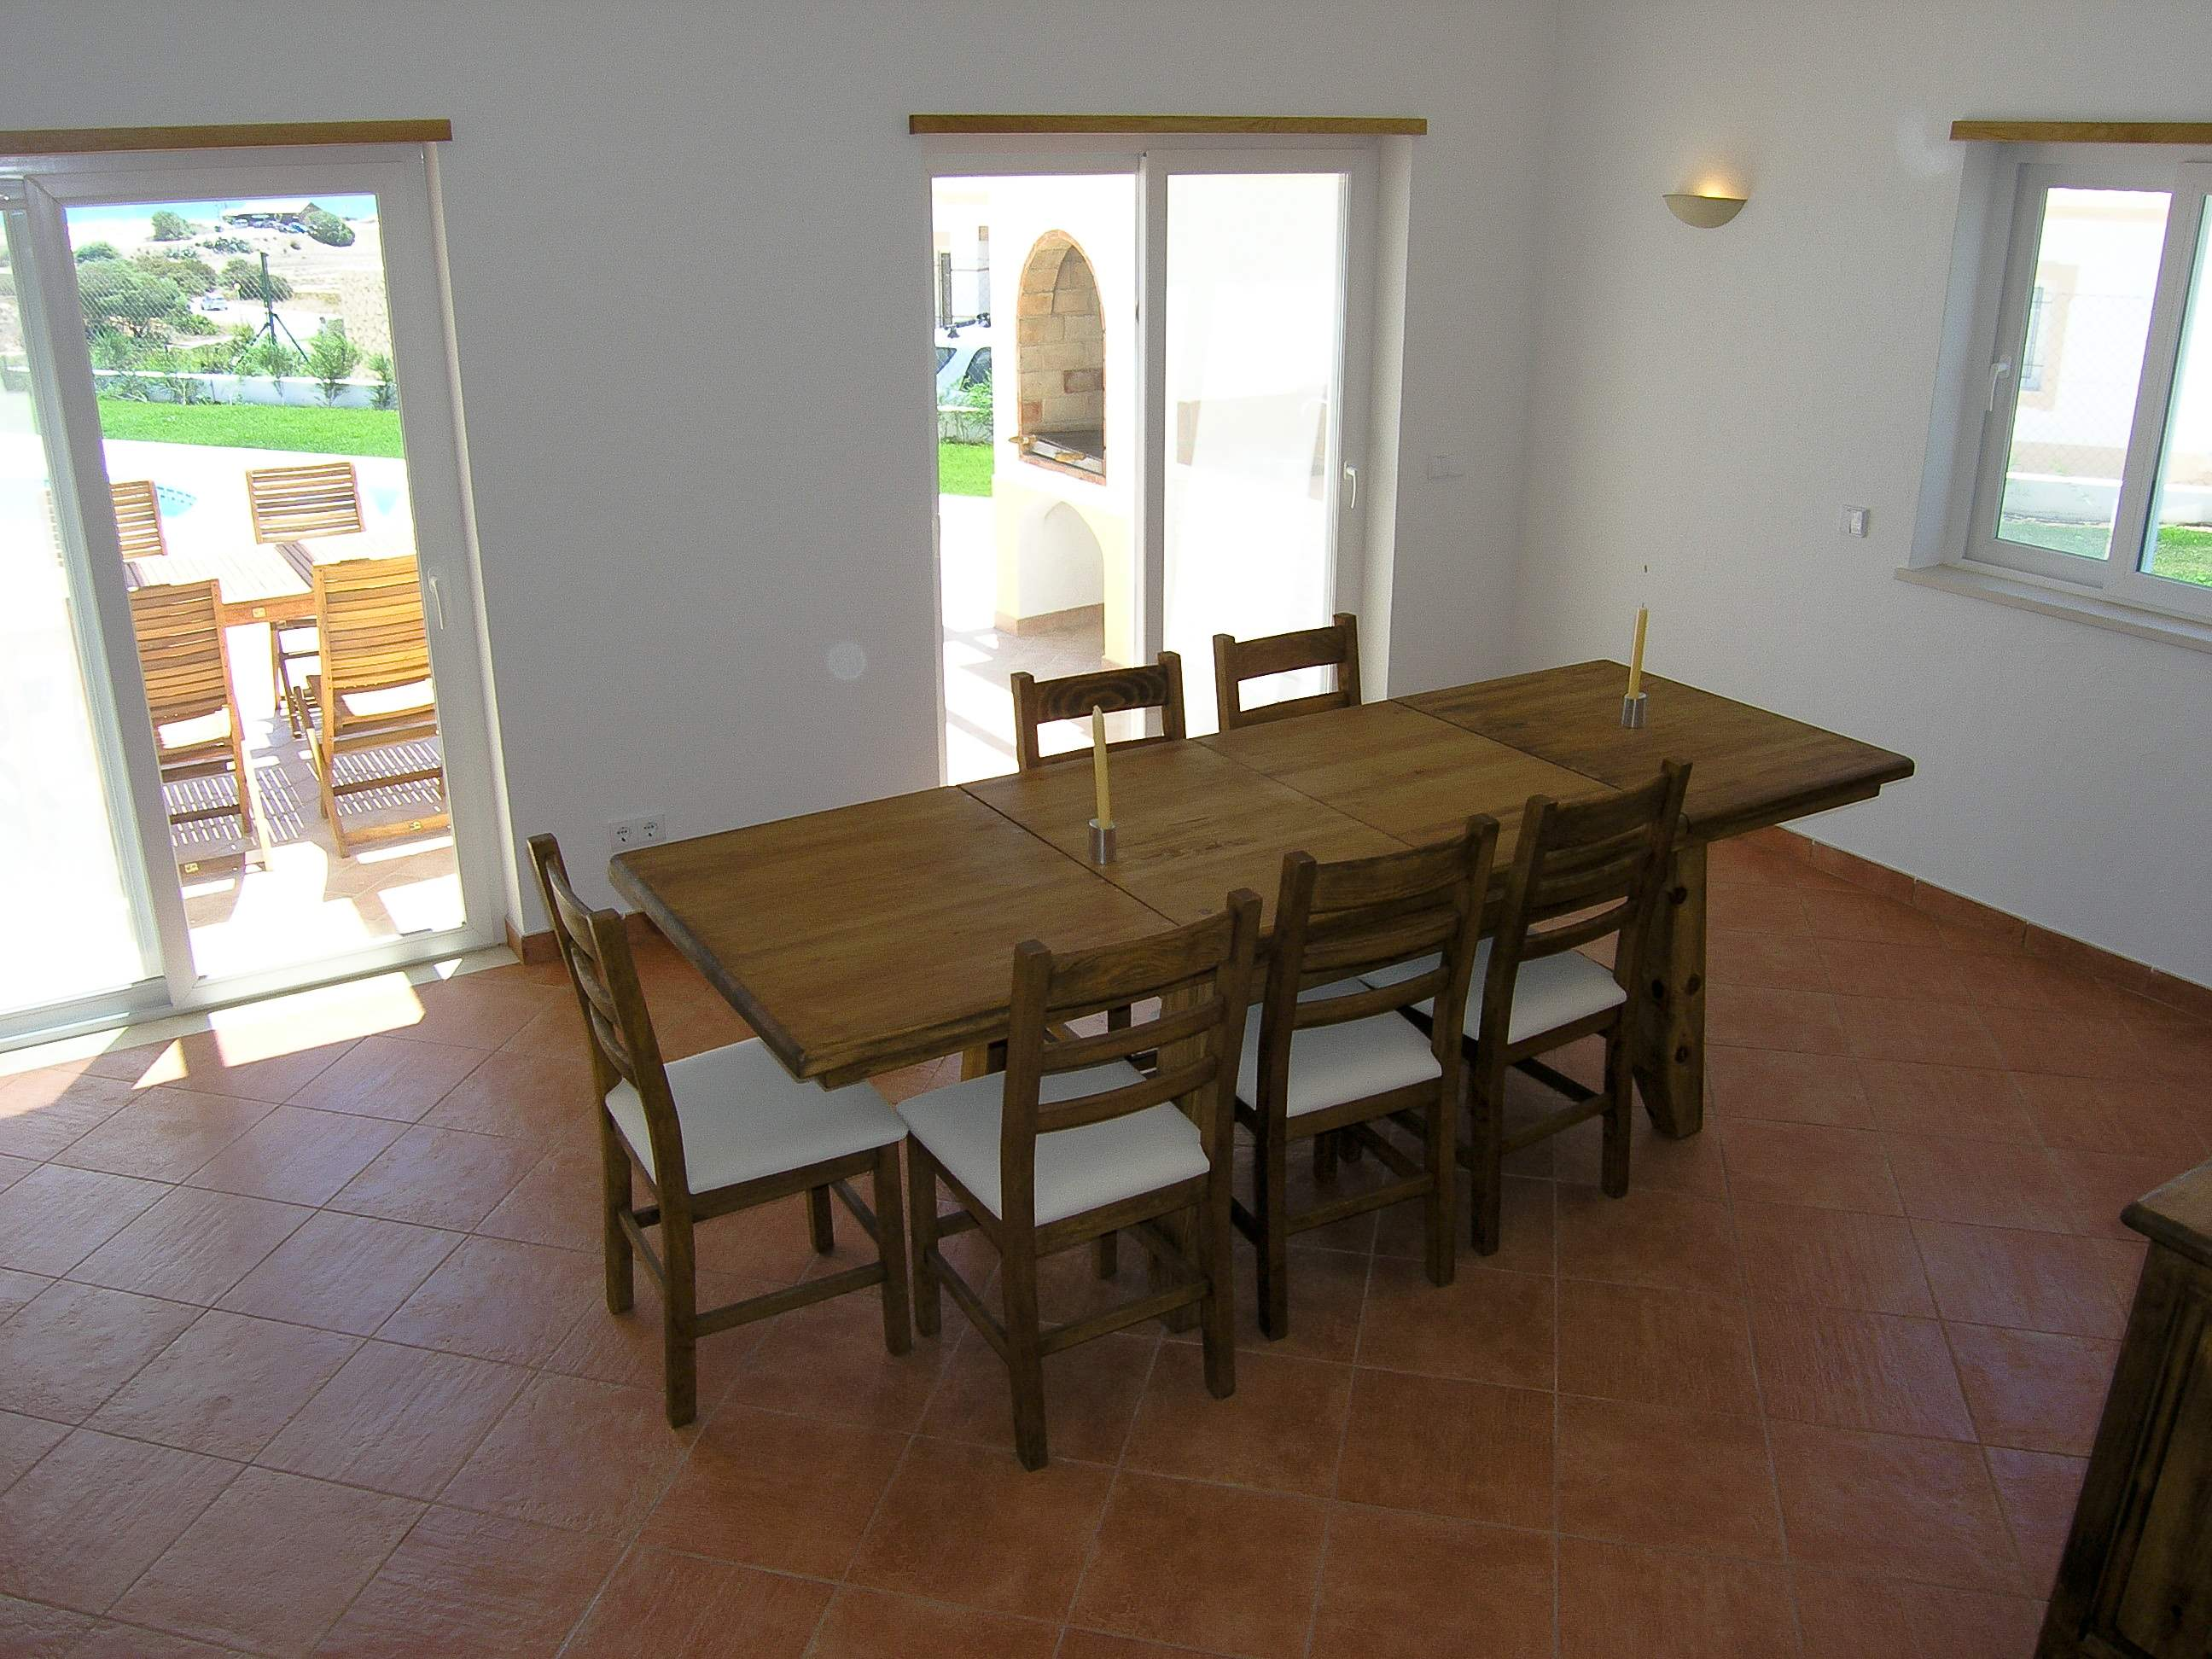 Martinhal Luxury Villa No.10, Three Bedroom Villa, 3 bedroom villa in Martinhal Sagres, Algarve Photo #12